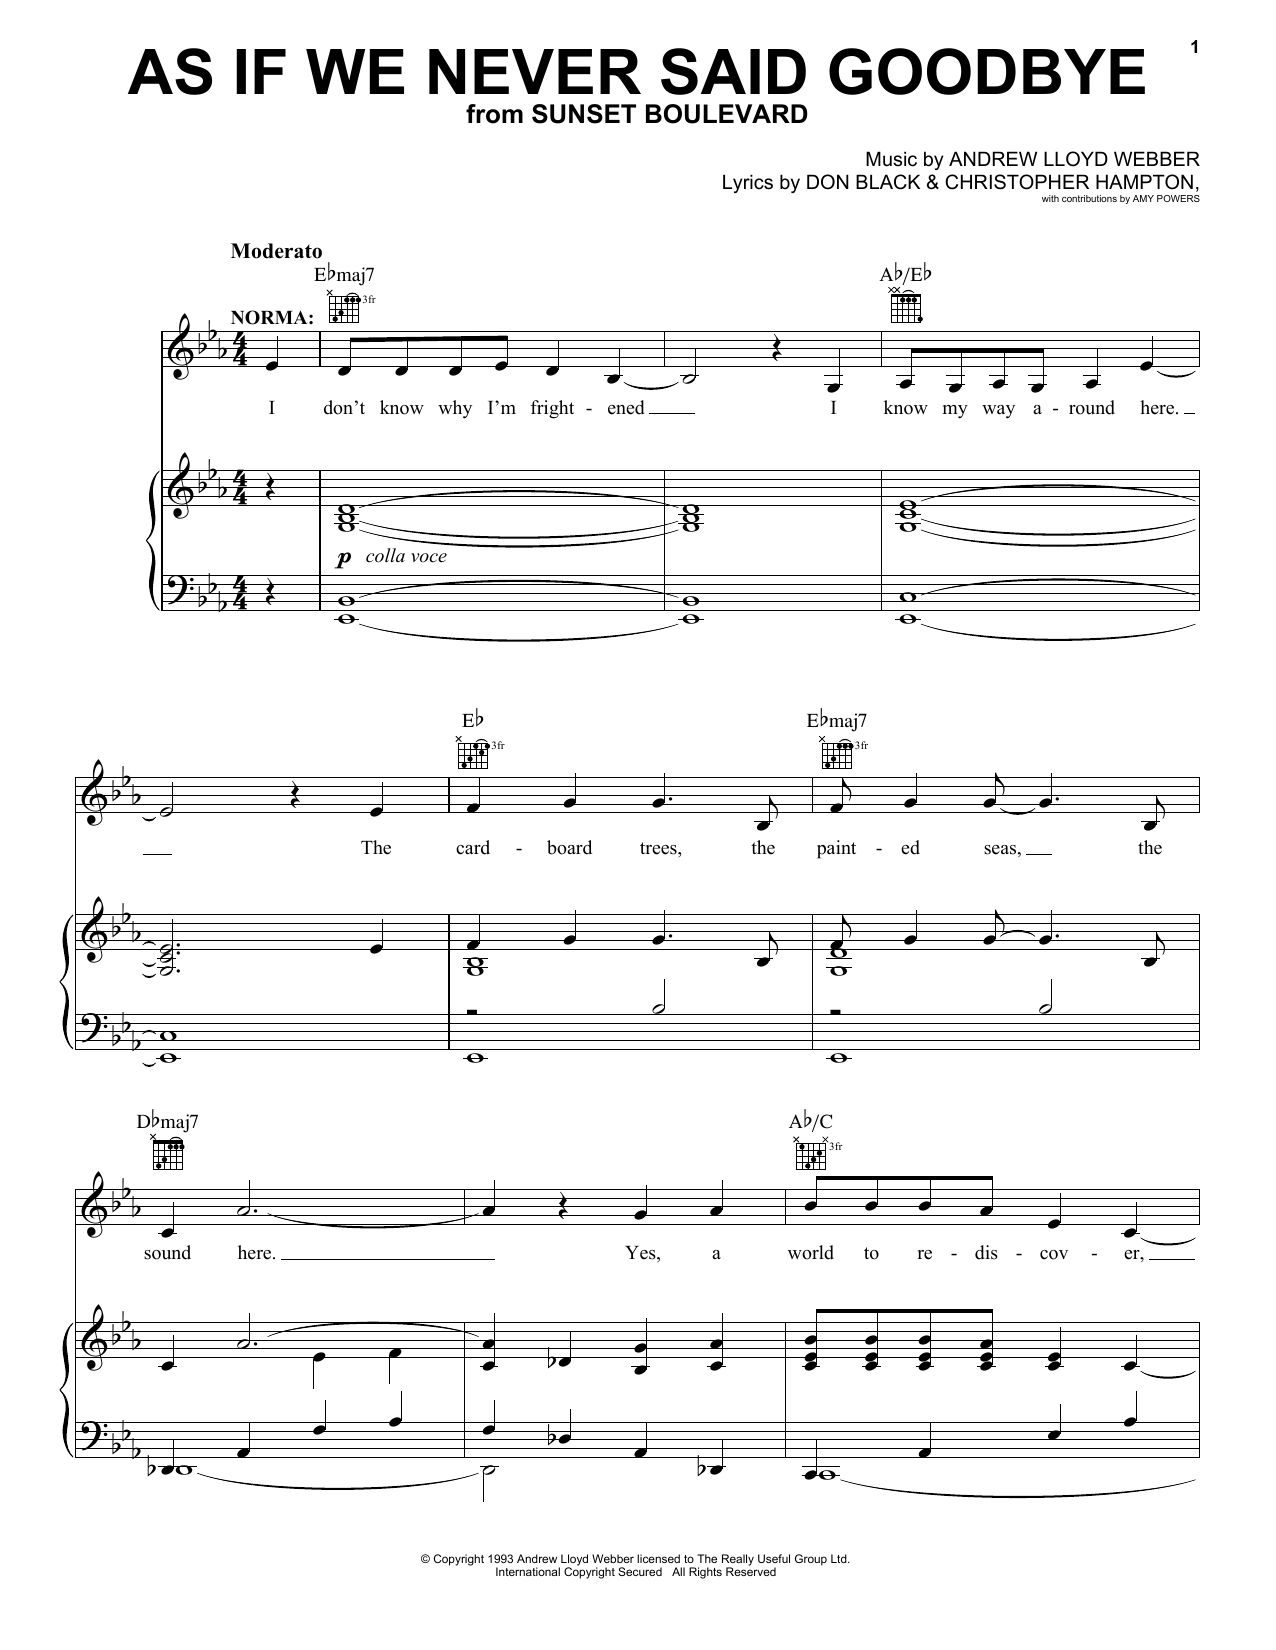 Andrew Lloyd Webber As If We Never Said Goodbye sheet music notes and chords. Download Printable PDF.